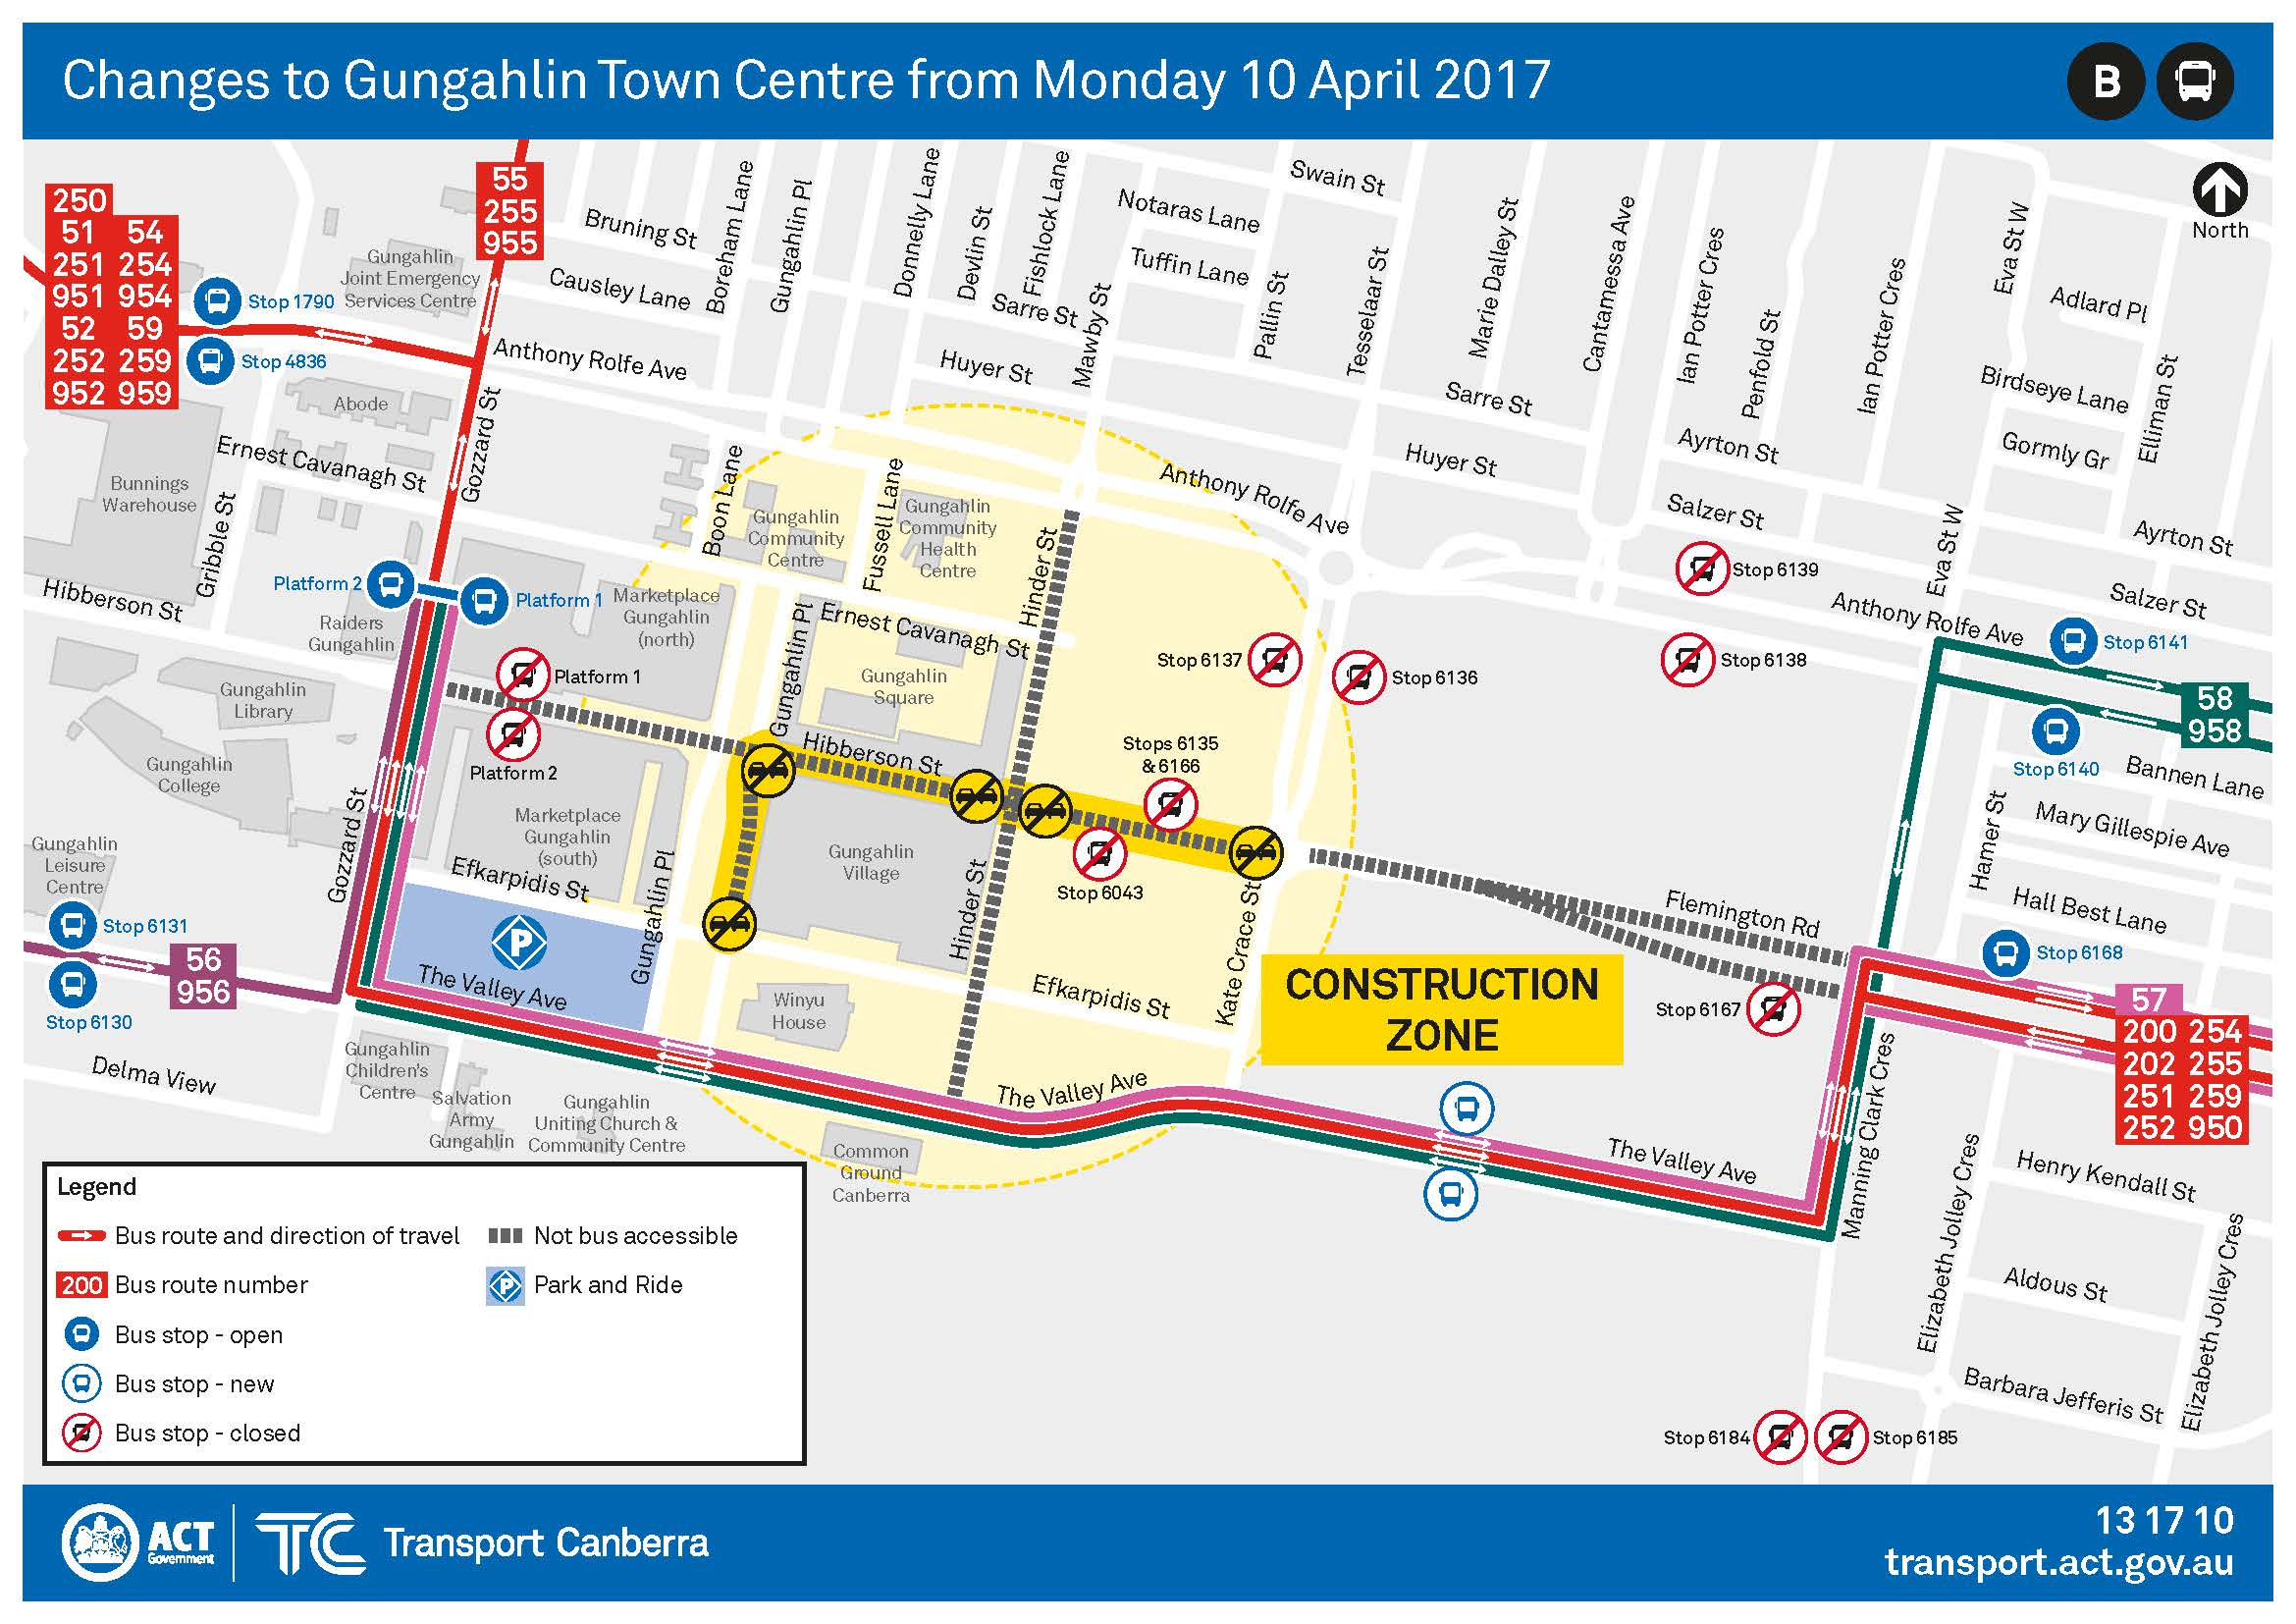 Map of bus diversions in Gungahlin Town Centre from 10 April 2017